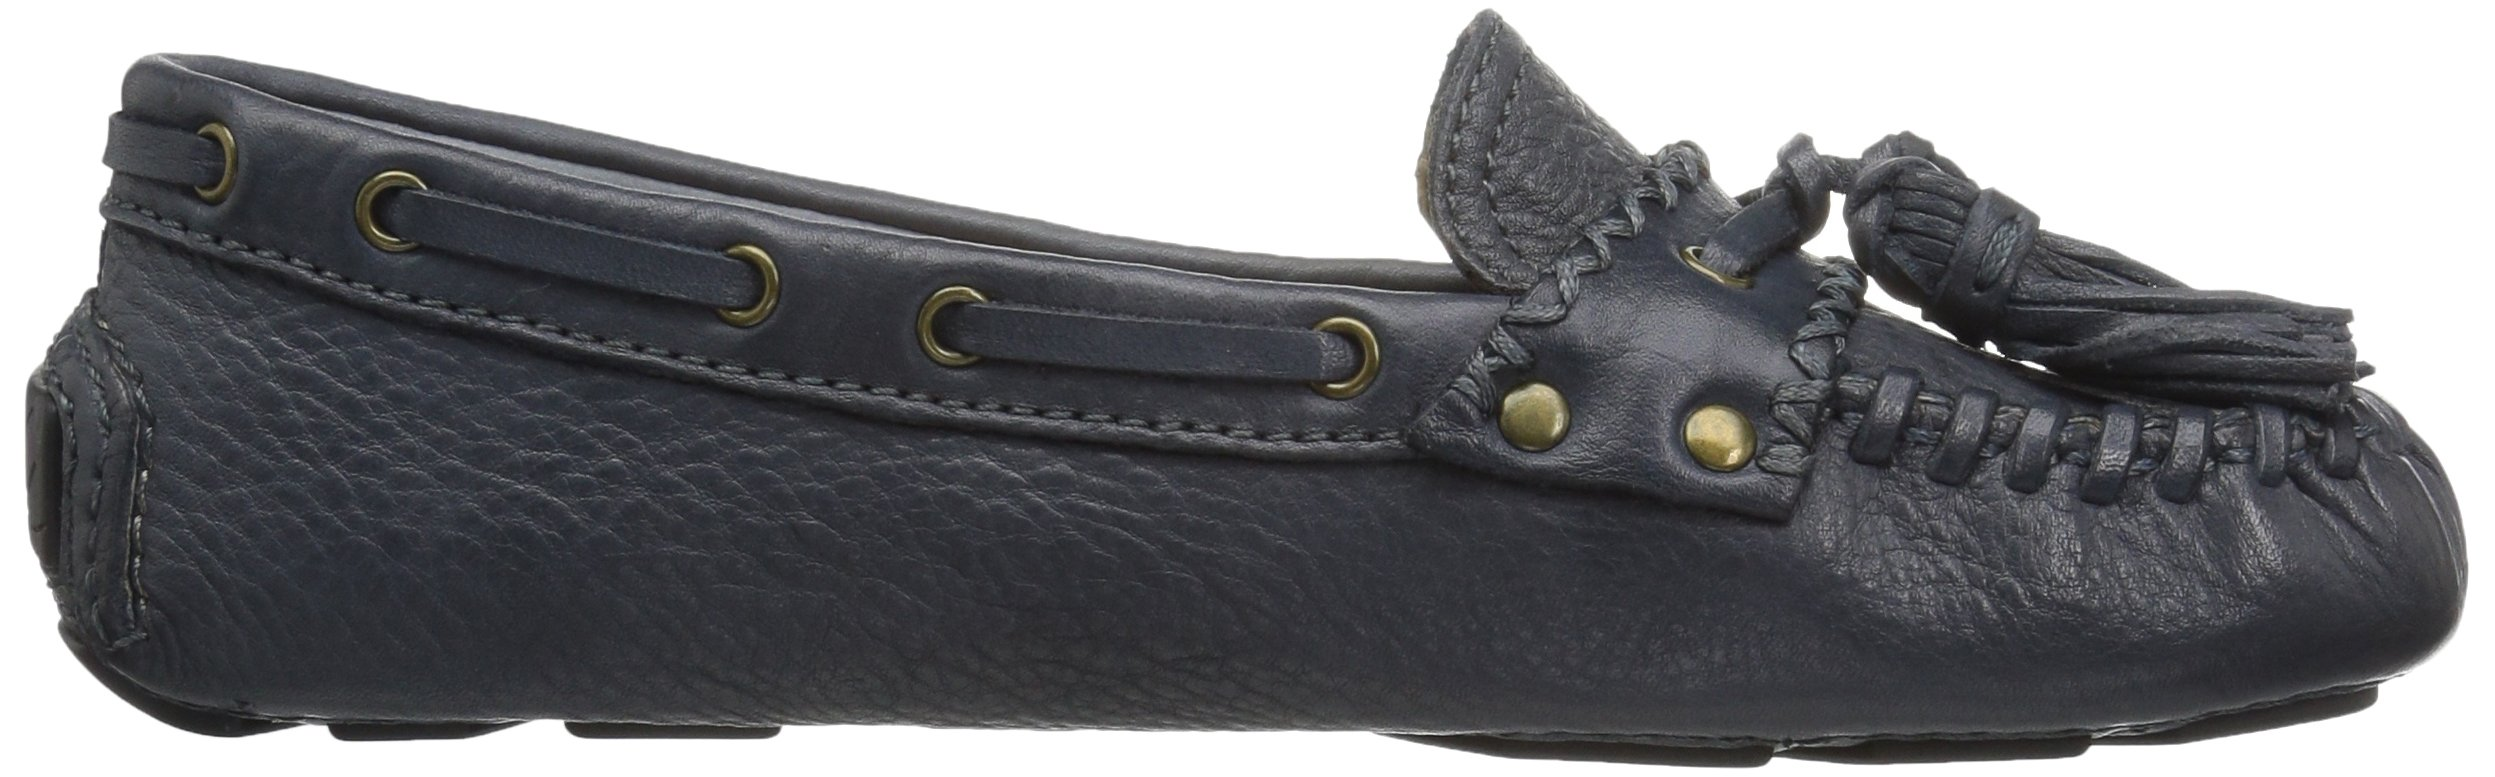 Patricia Nash Women's Domenica Driving Style Loafer, Oxford Blue, 37.5 B US by Patricia Nash (Image #7)